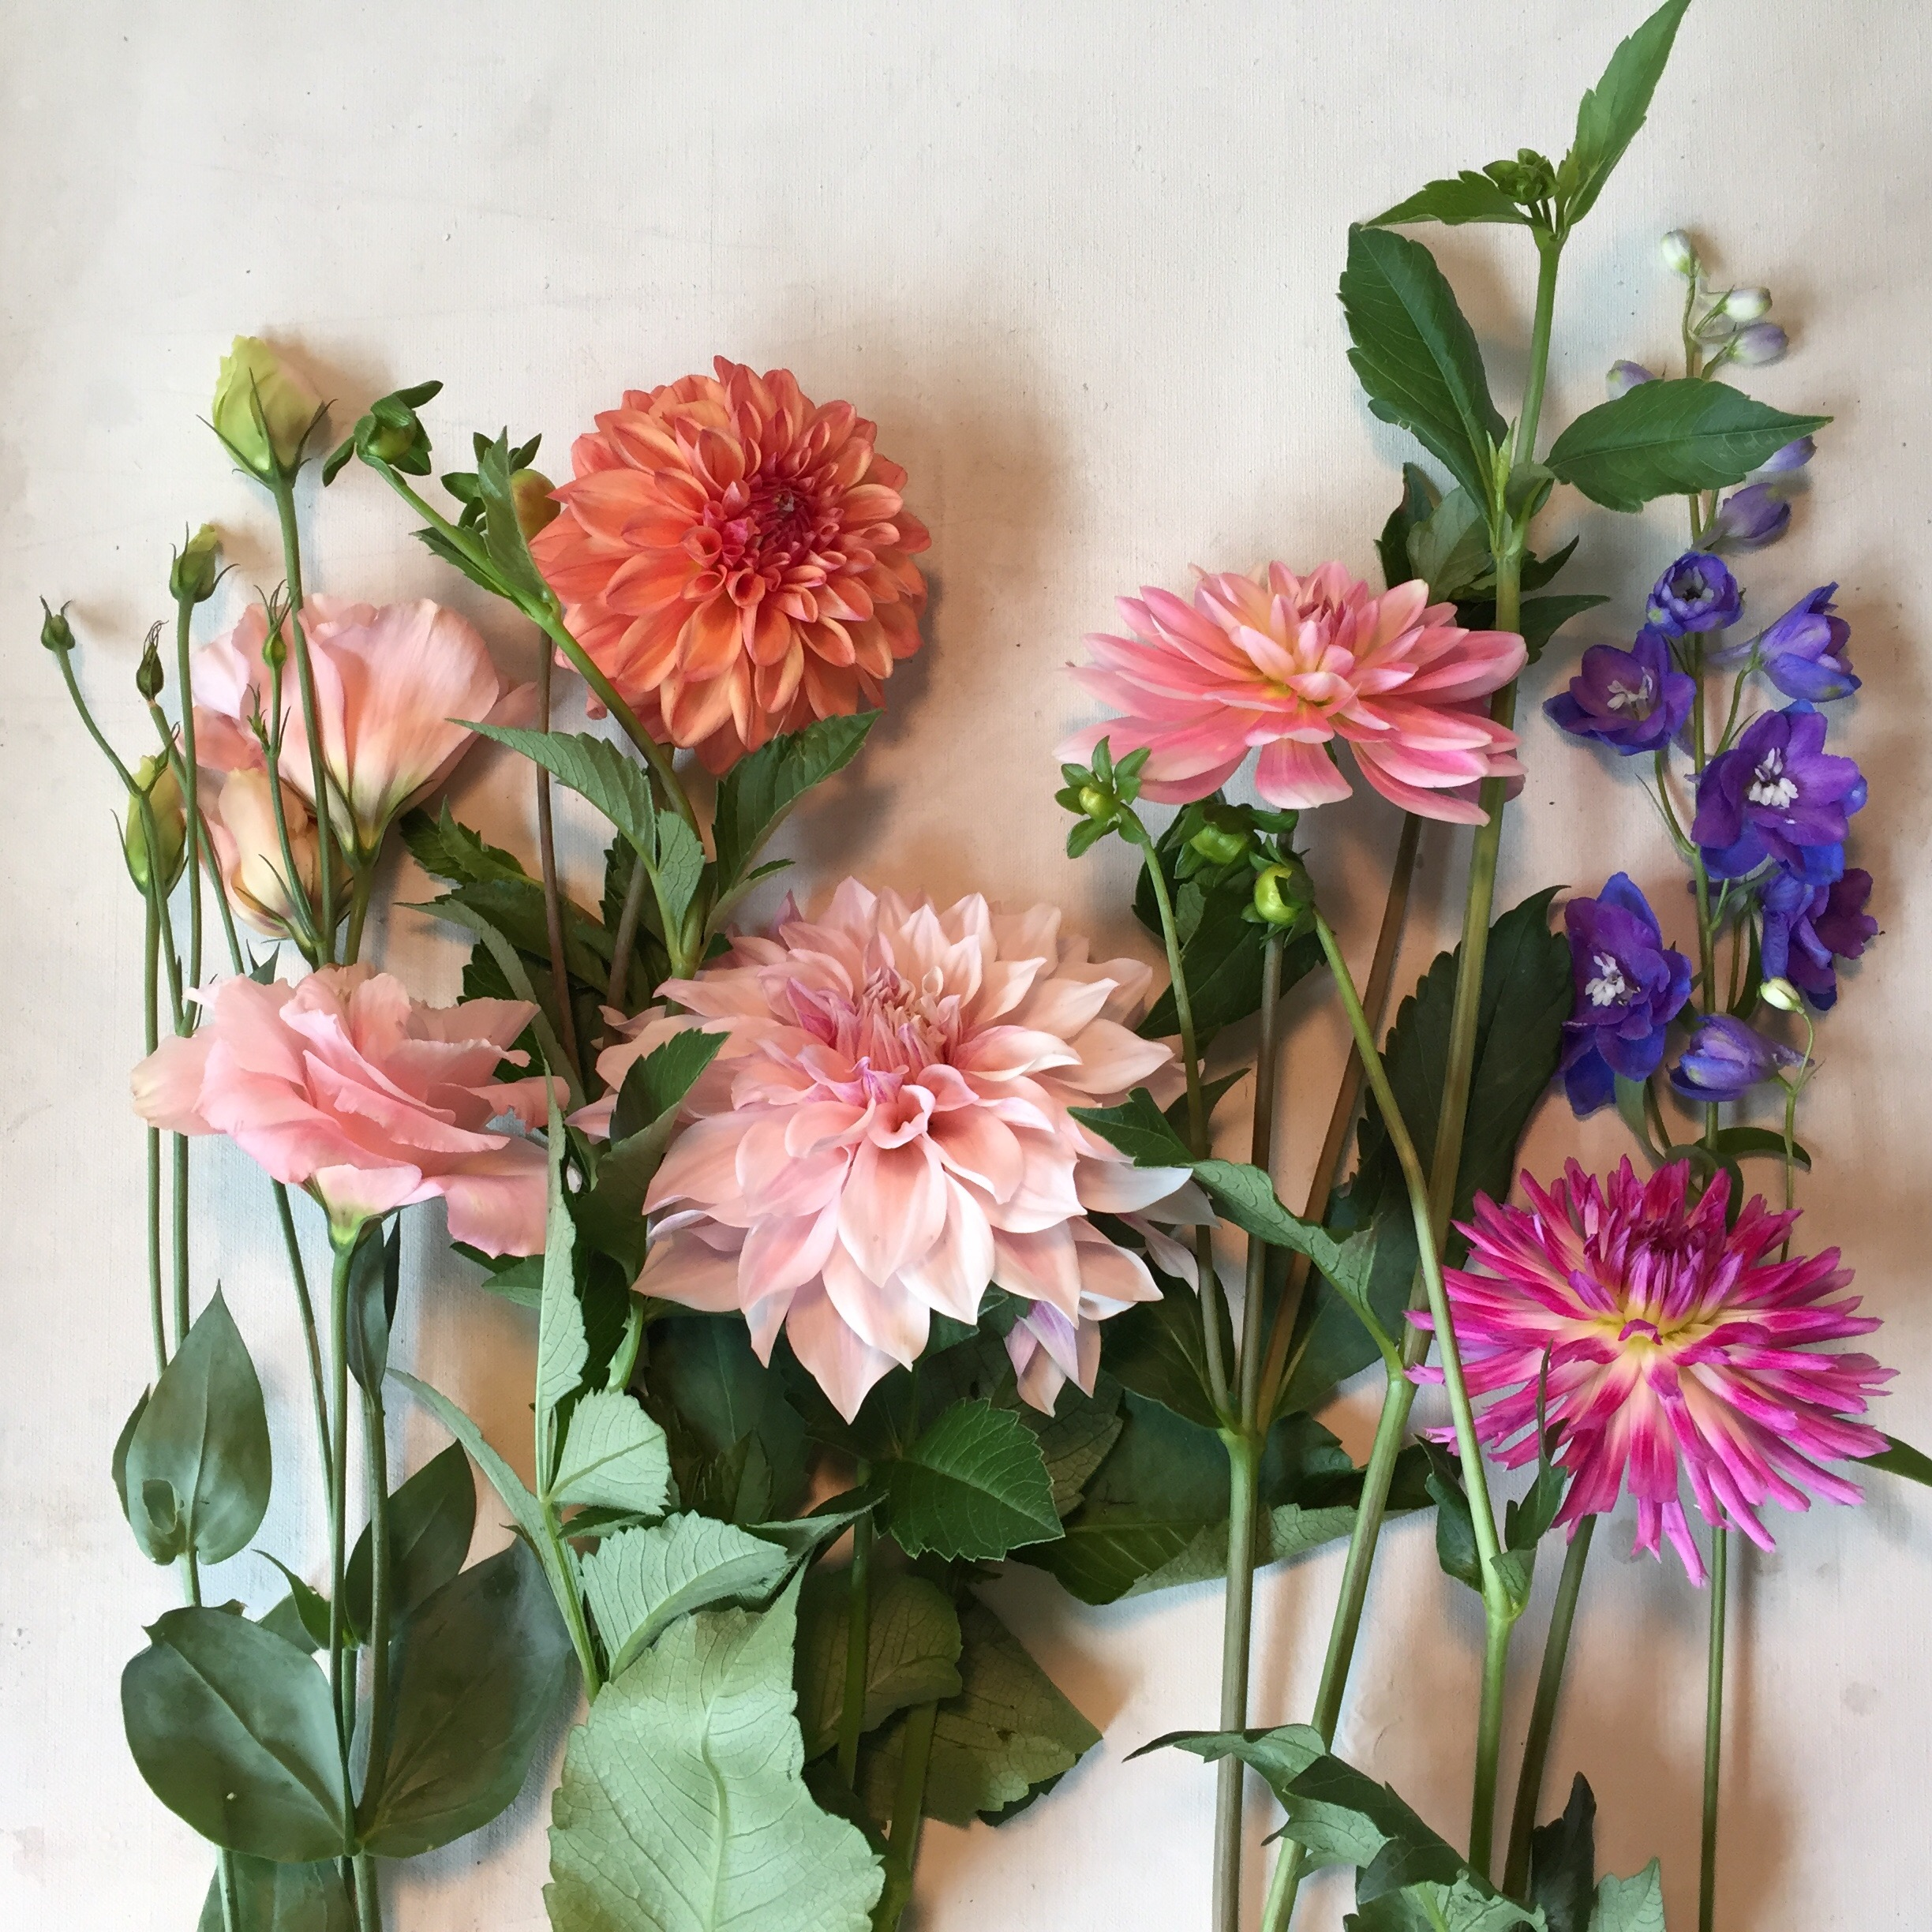 bouquet deconstructed.jpg